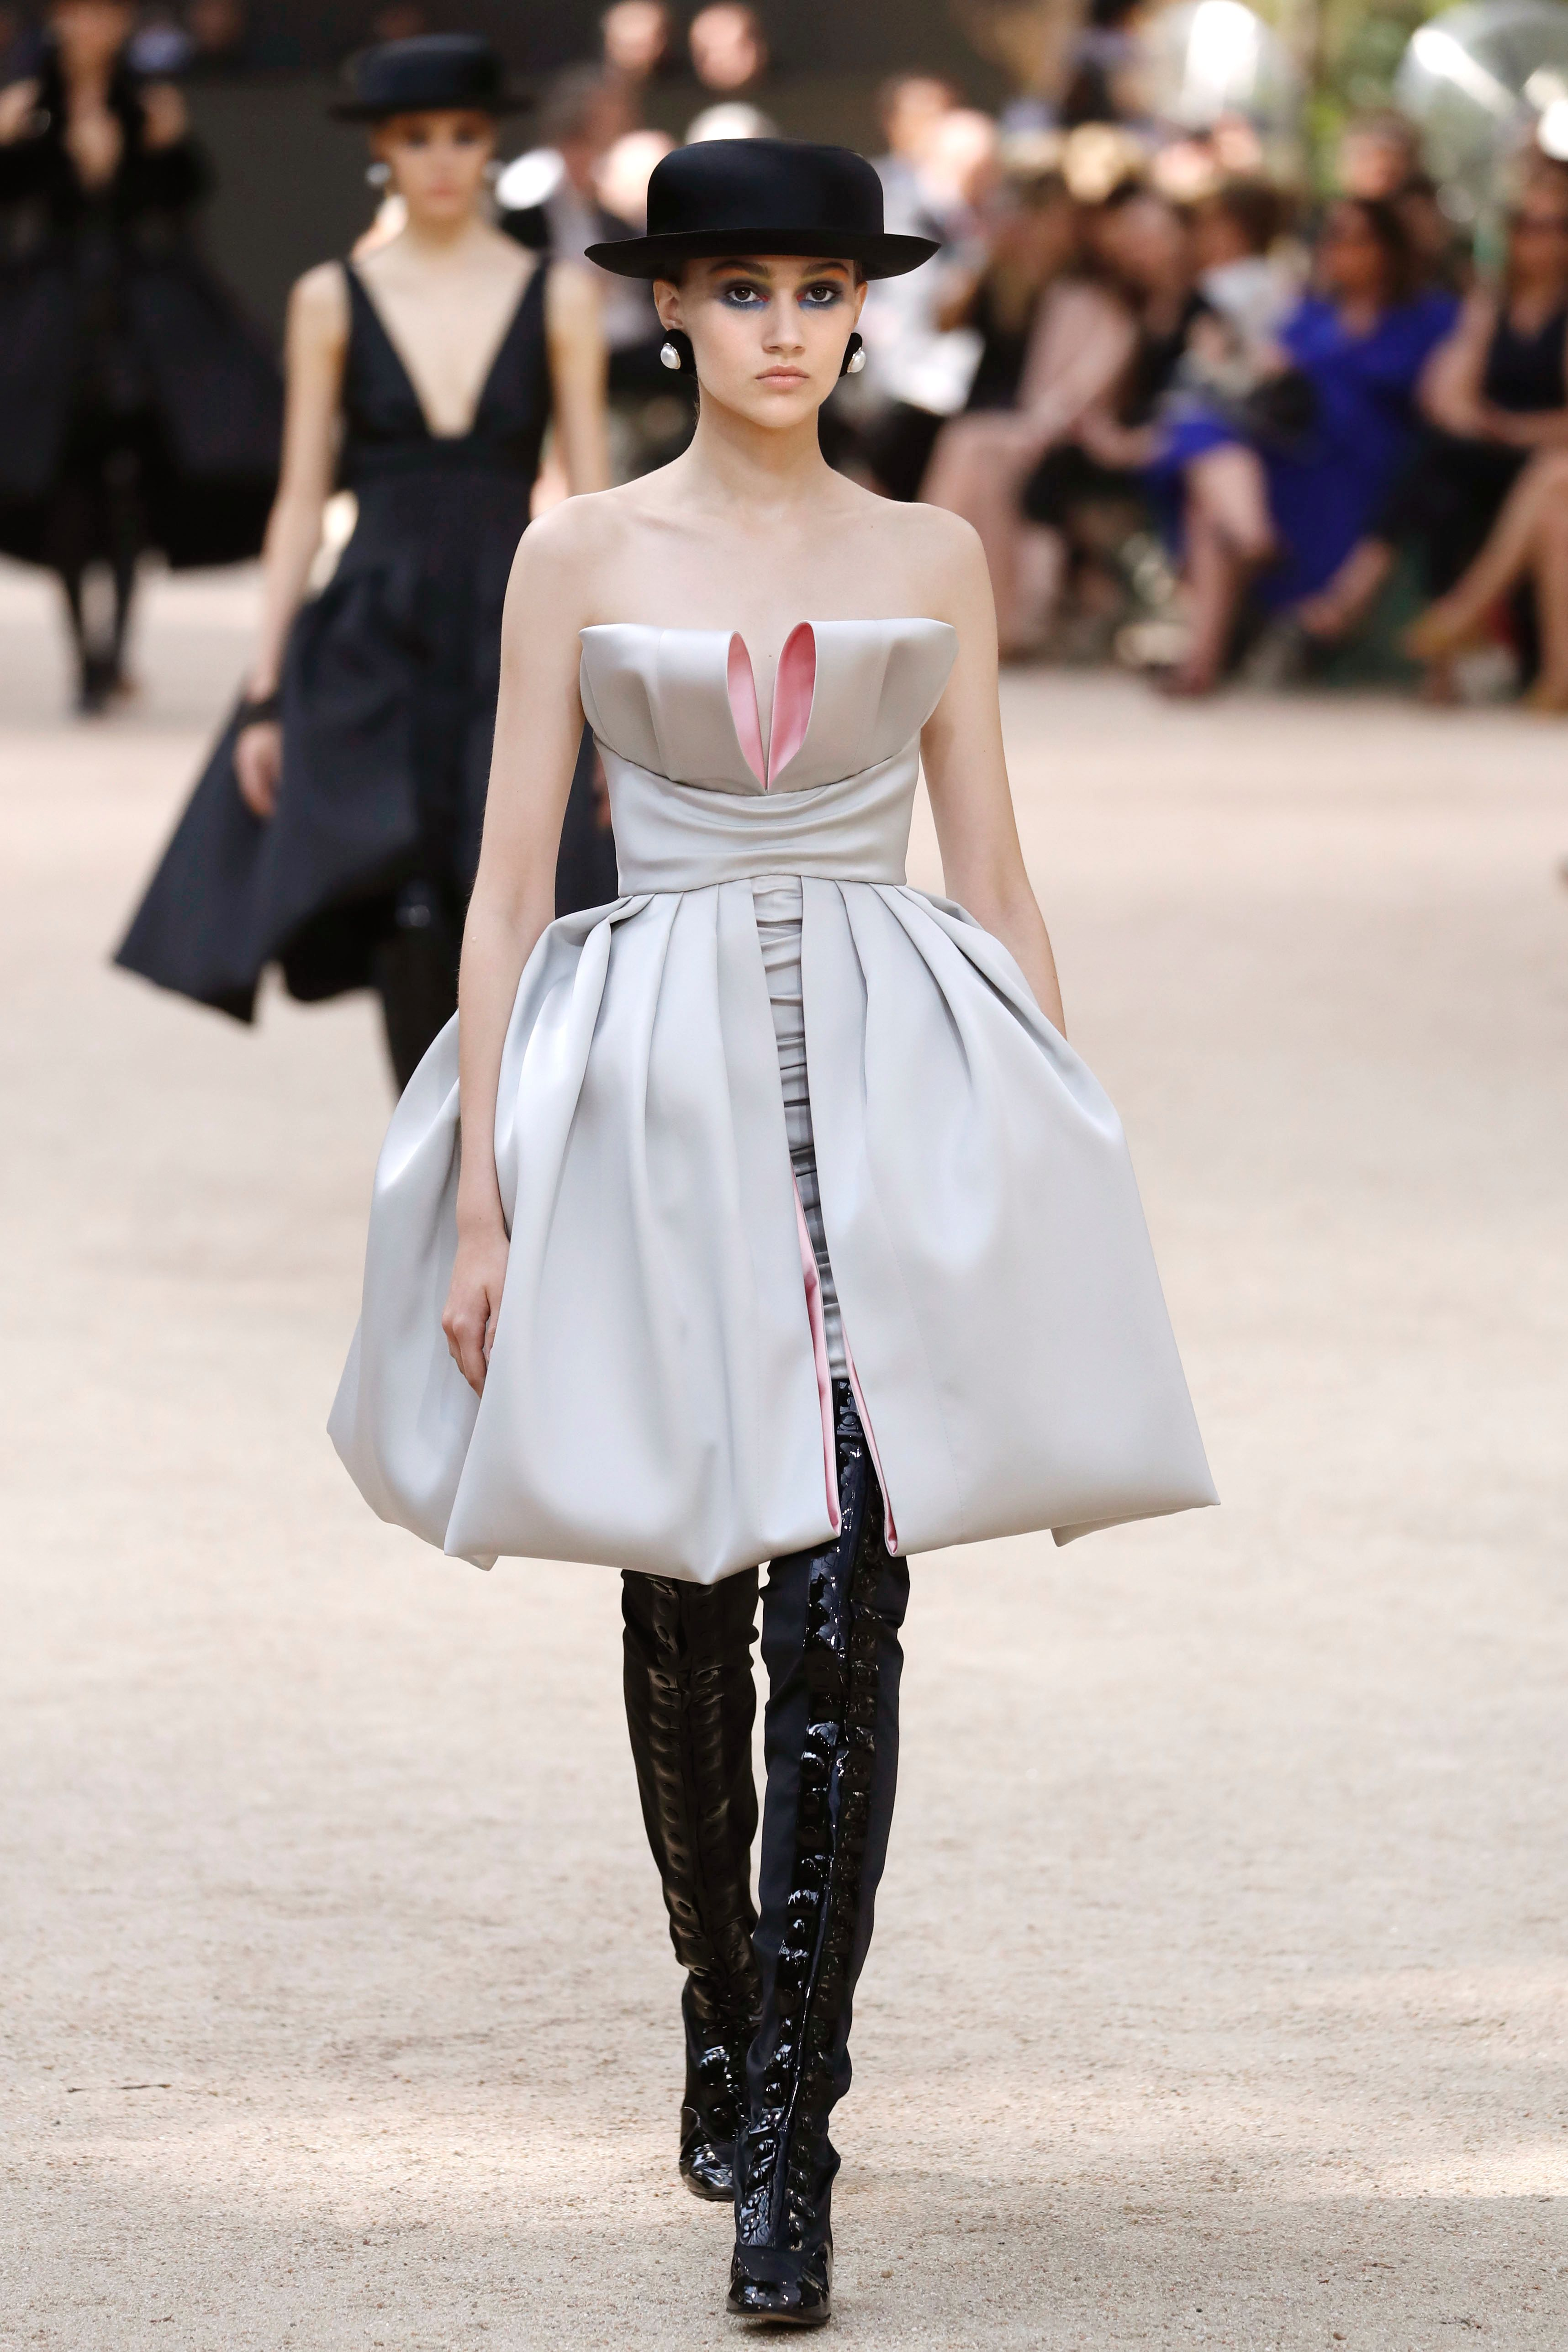 Chanel Fall 2017 Couture catwalk